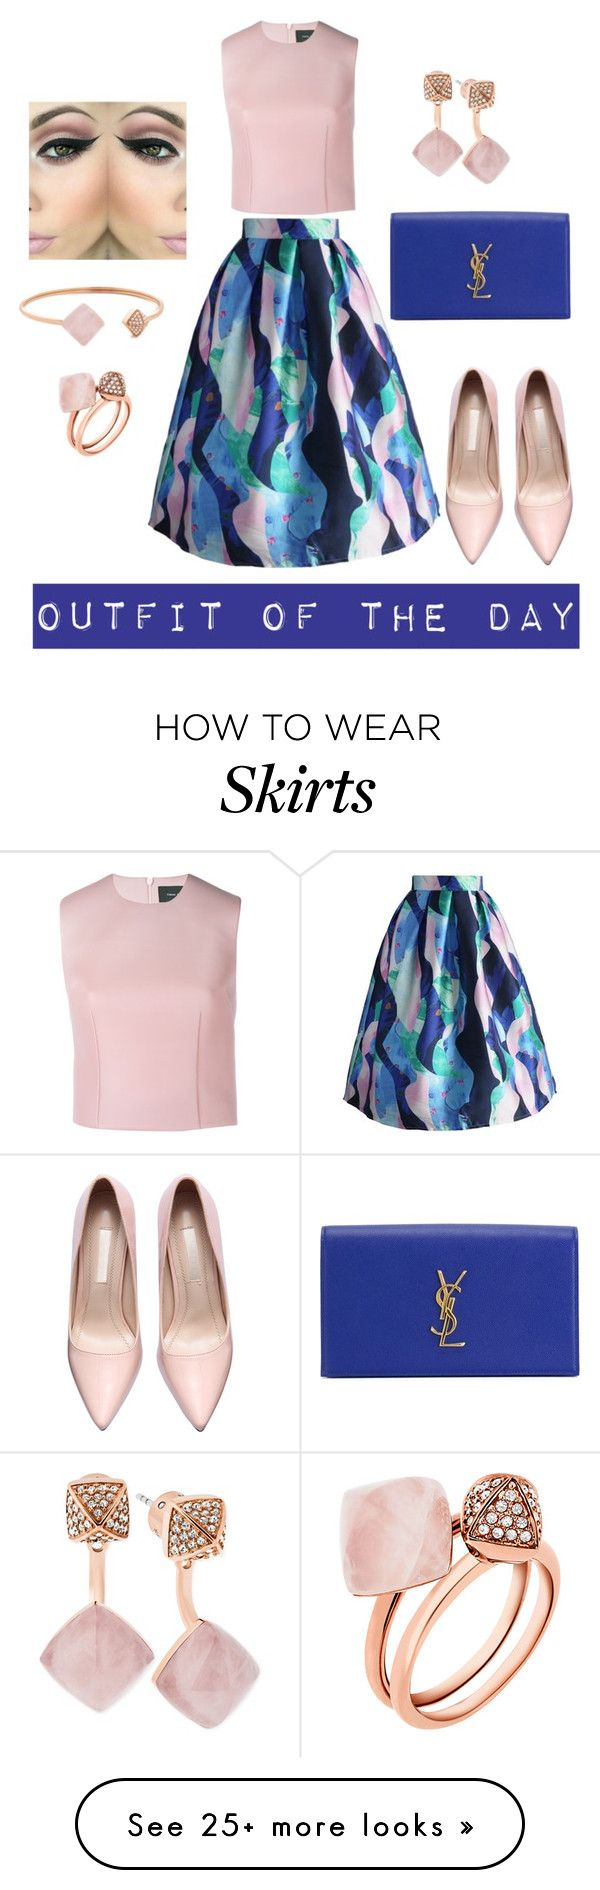 """""""Midi ways to wear the Skirt"""" by stephstyle76 on Polyvore featuring moda, Chicwish, Simone Rocha, Michael Kors, Yves Saint Laurent, women's clothing, women, female, woman e misses"""